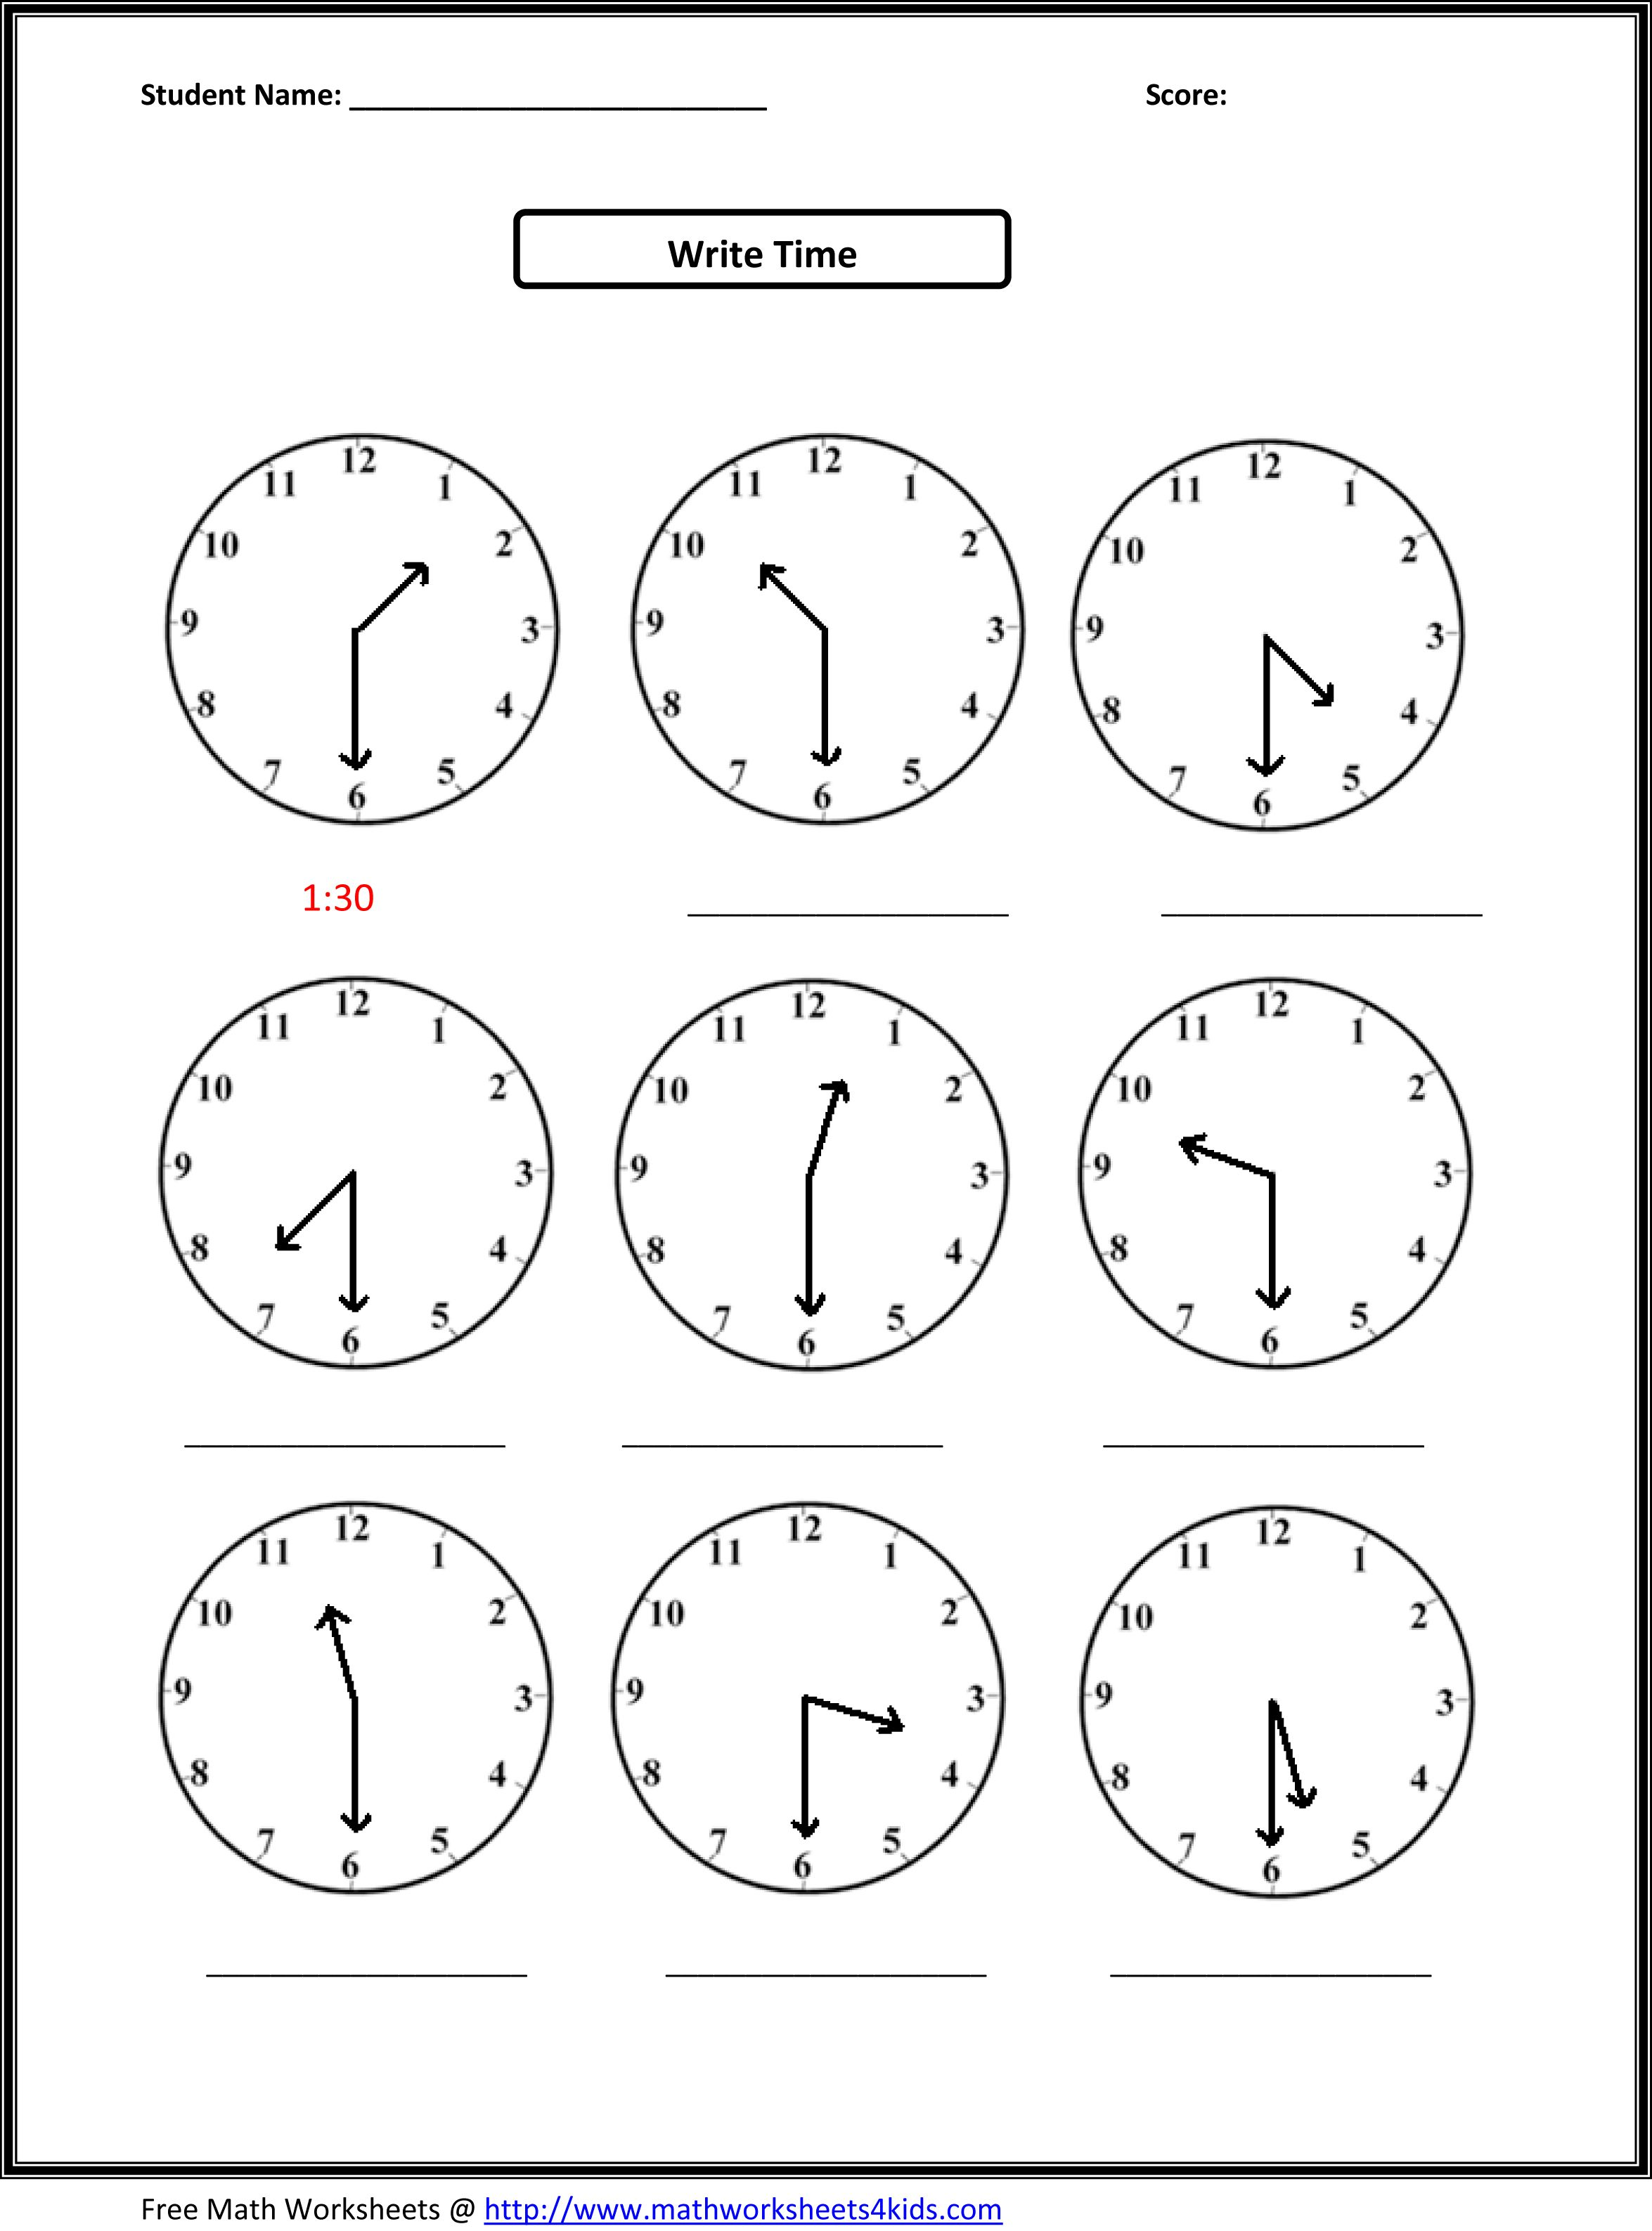 Weirdmailus  Stunning Worksheet On Time For Grade   Reocurent With Luxury Free Printable Telling Time Worksheets Nd Grade  Reocurent With Beauteous Probability And Compound Events Worksheet Also Esl Present Tense Worksheets In Addition Shape Nets Worksheet And Torque Worksheet Physics As Well As Classification Of Organisms Worksheet Answers Additionally Worksheet  Applying The Fundamental Theorem Of Calculus From Reocurentcom With Weirdmailus  Luxury Worksheet On Time For Grade   Reocurent With Beauteous Free Printable Telling Time Worksheets Nd Grade  Reocurent And Stunning Probability And Compound Events Worksheet Also Esl Present Tense Worksheets In Addition Shape Nets Worksheet From Reocurentcom